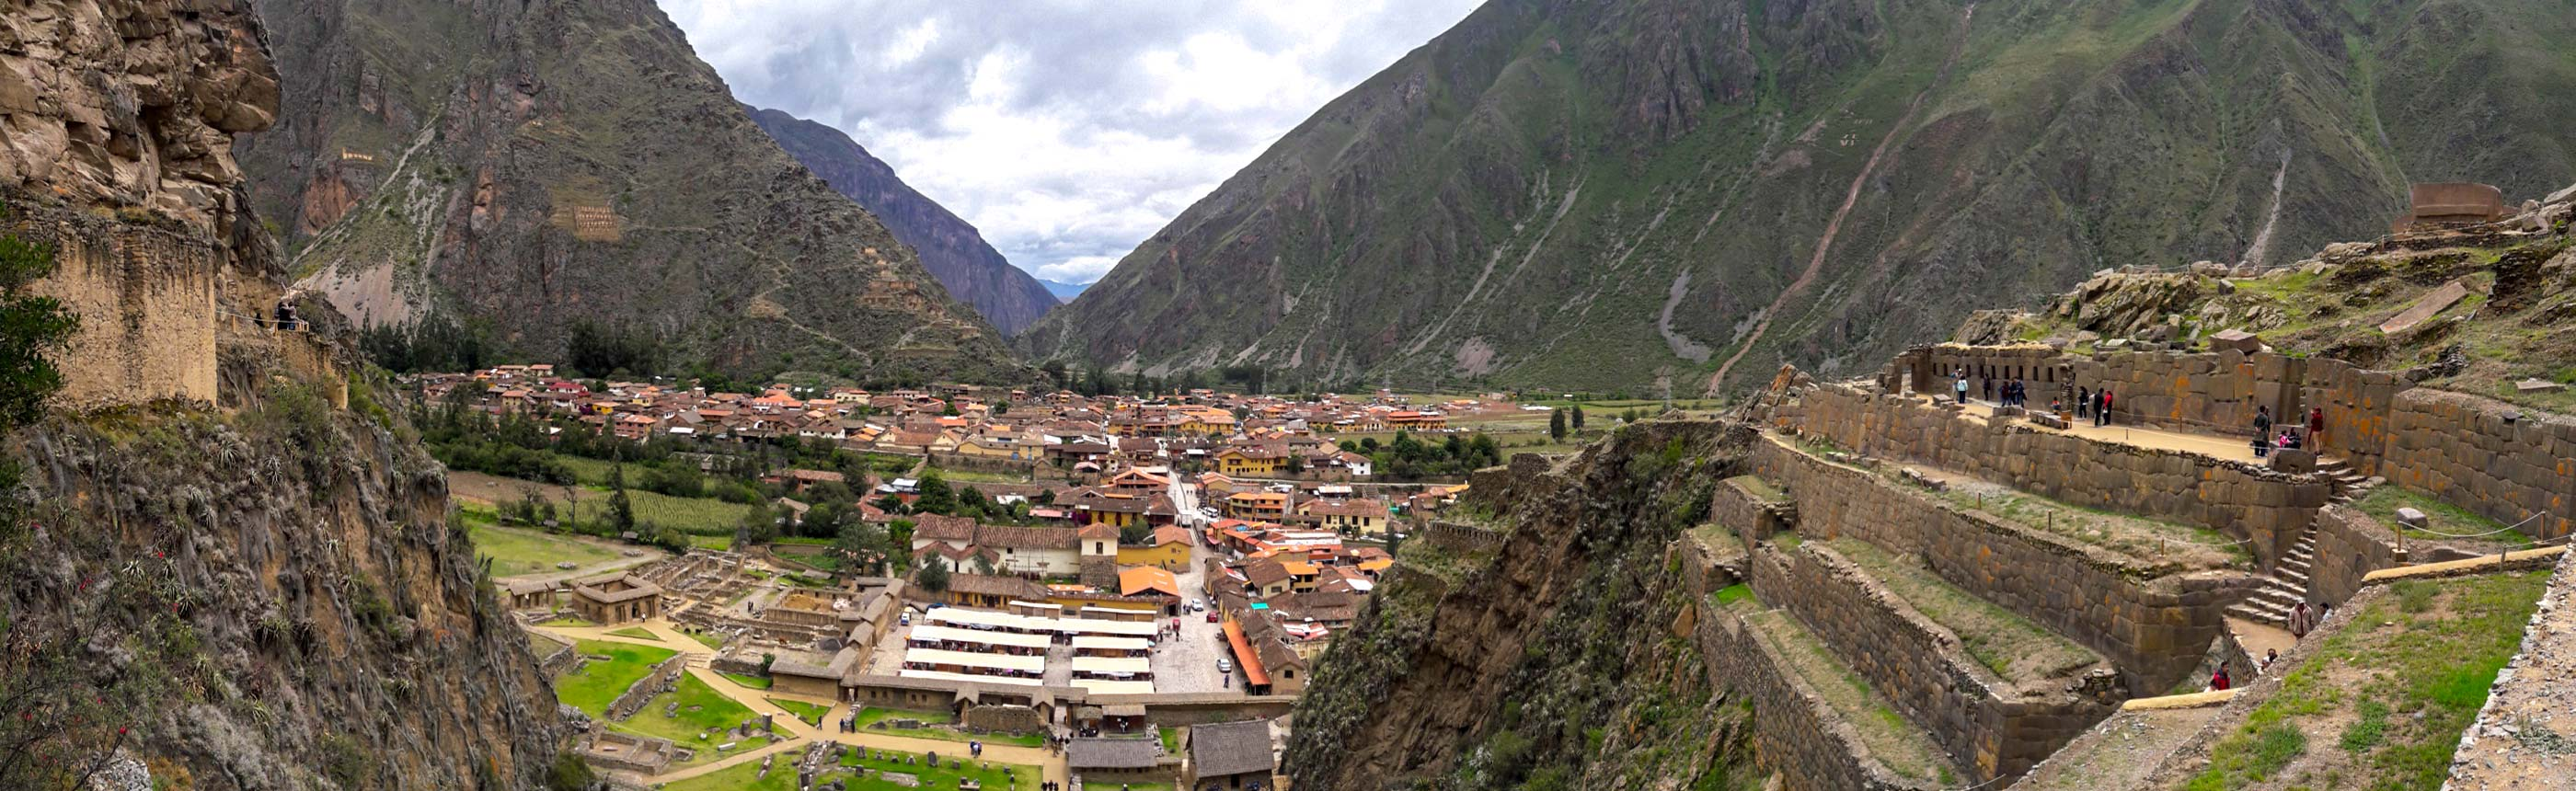 Ollantaytambo (Inca ruins) tour — With its ancient roots and sweeping views of the Andes peaks